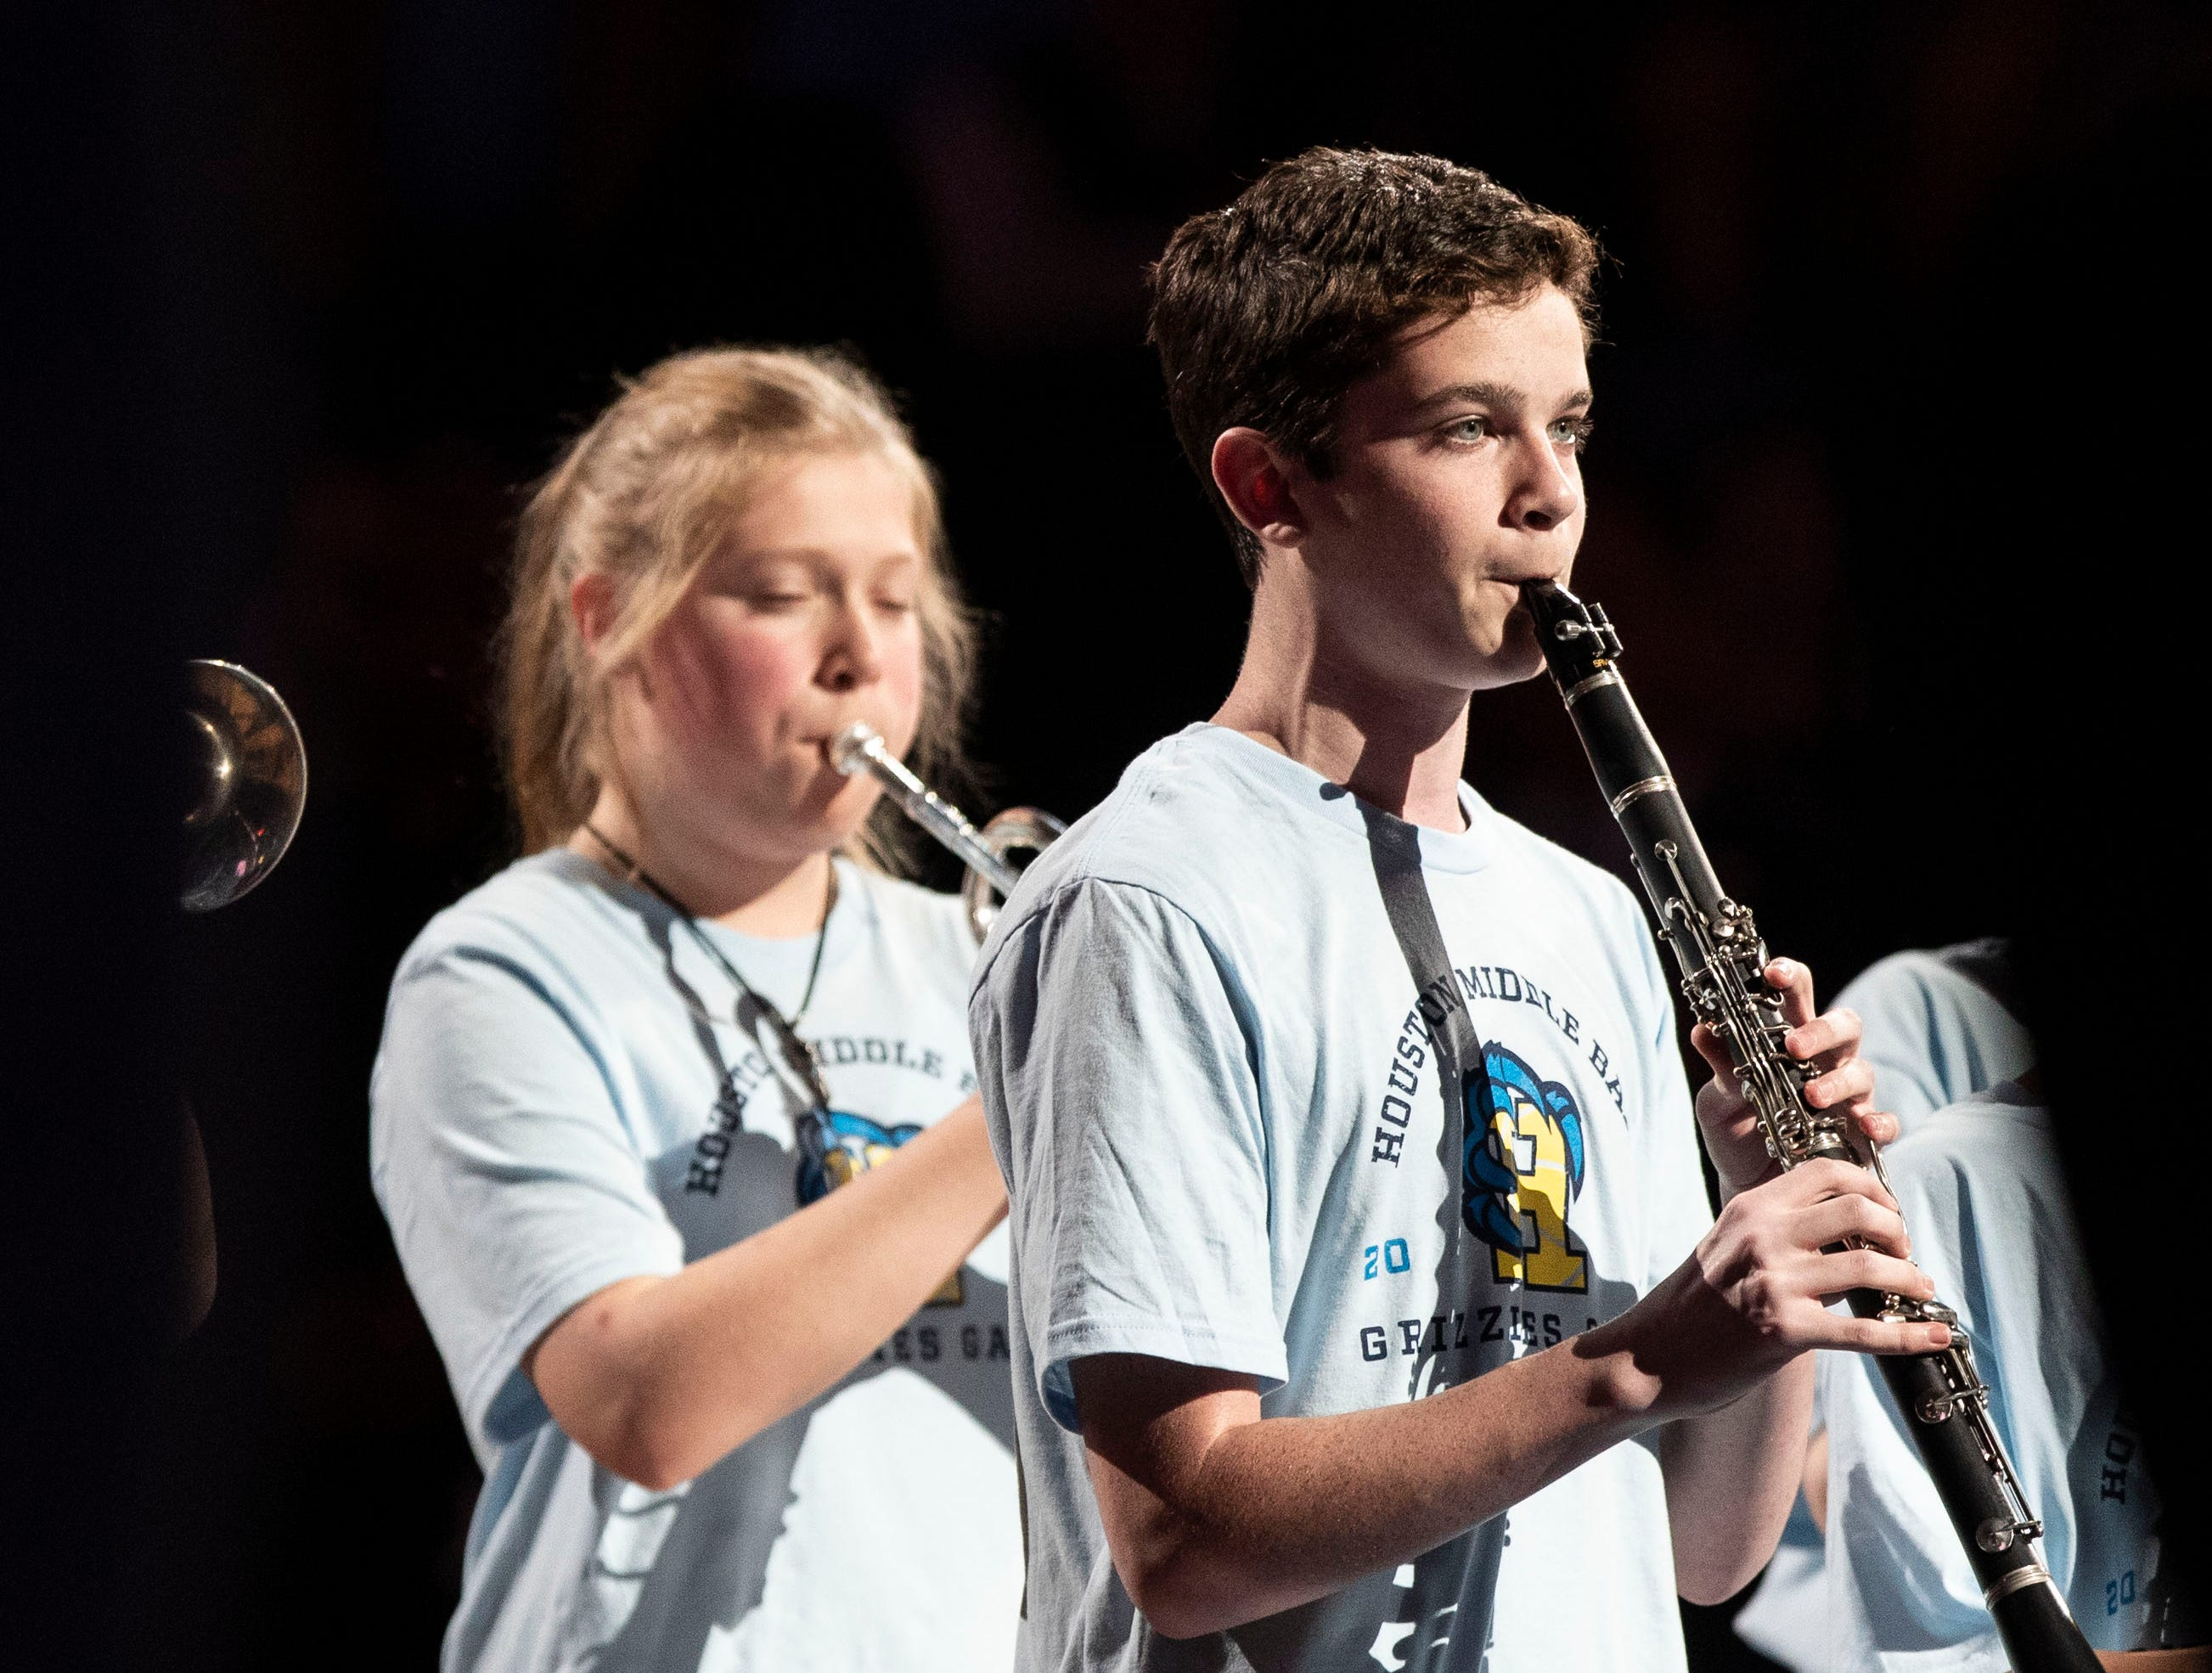 Houston Middle School band plays the national anthem at a NBA game between the Memphis Grizzles and Los Angeles Clippers, Wednesday, Dec. 5, 2018.